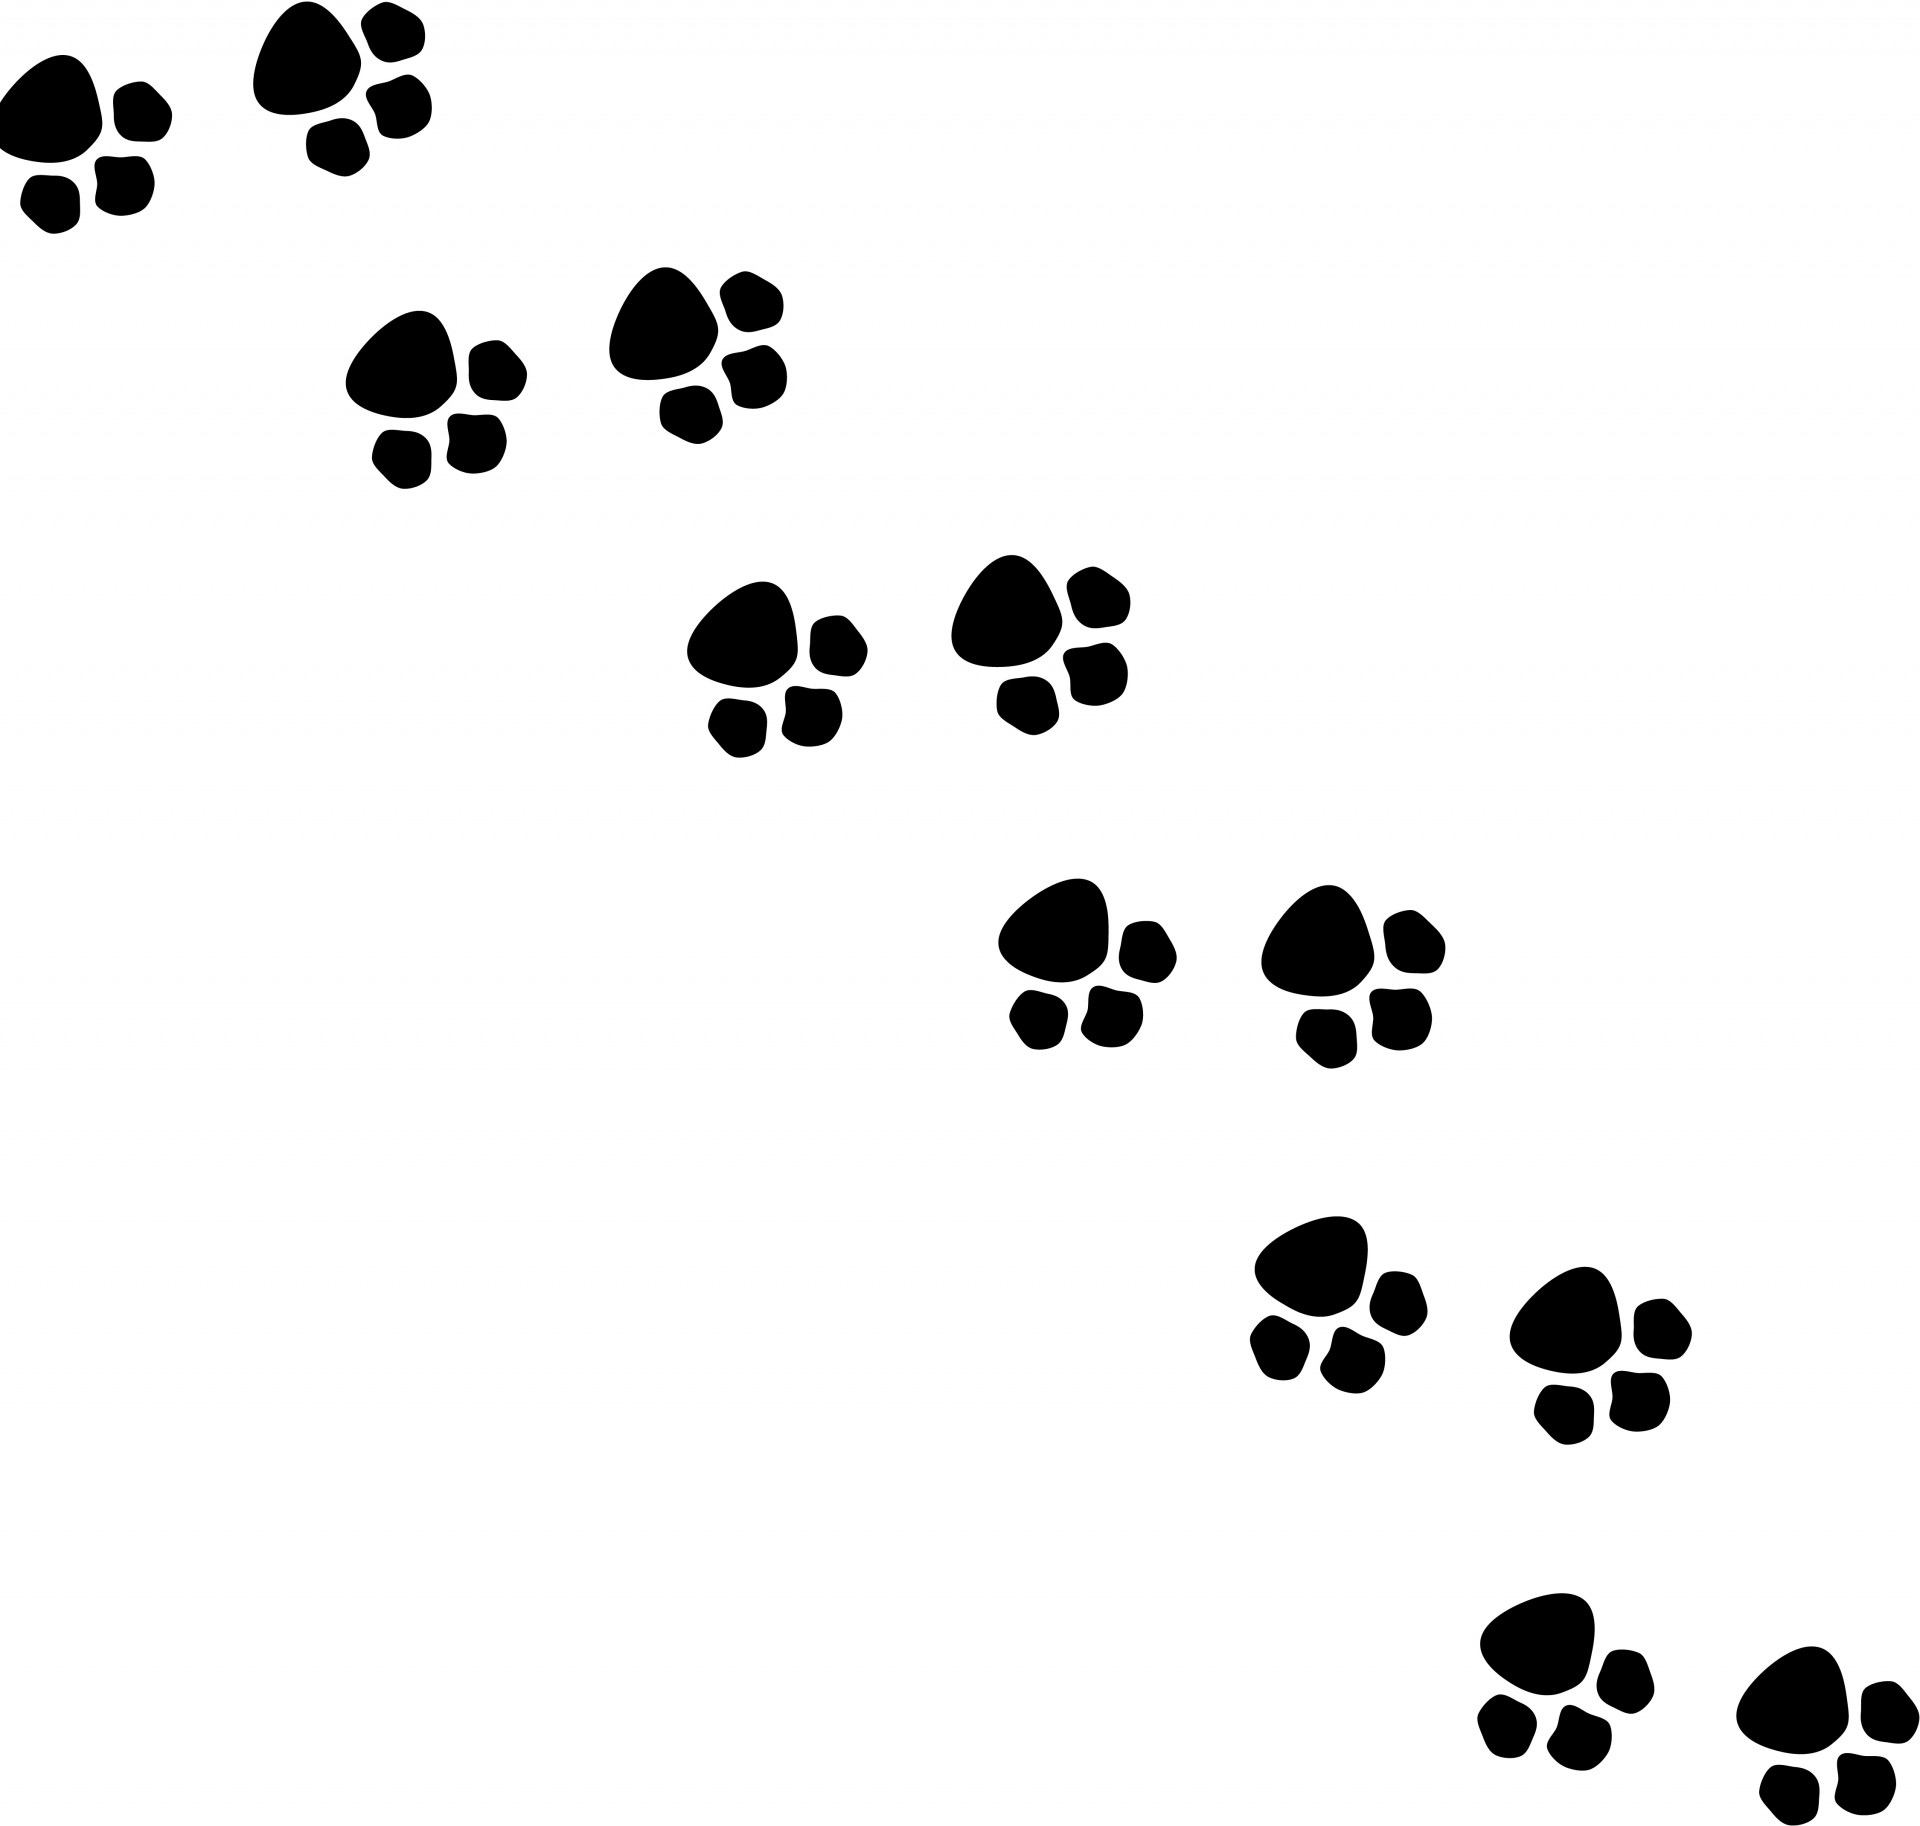 Footsteps clipart. Animal silhouette free stock